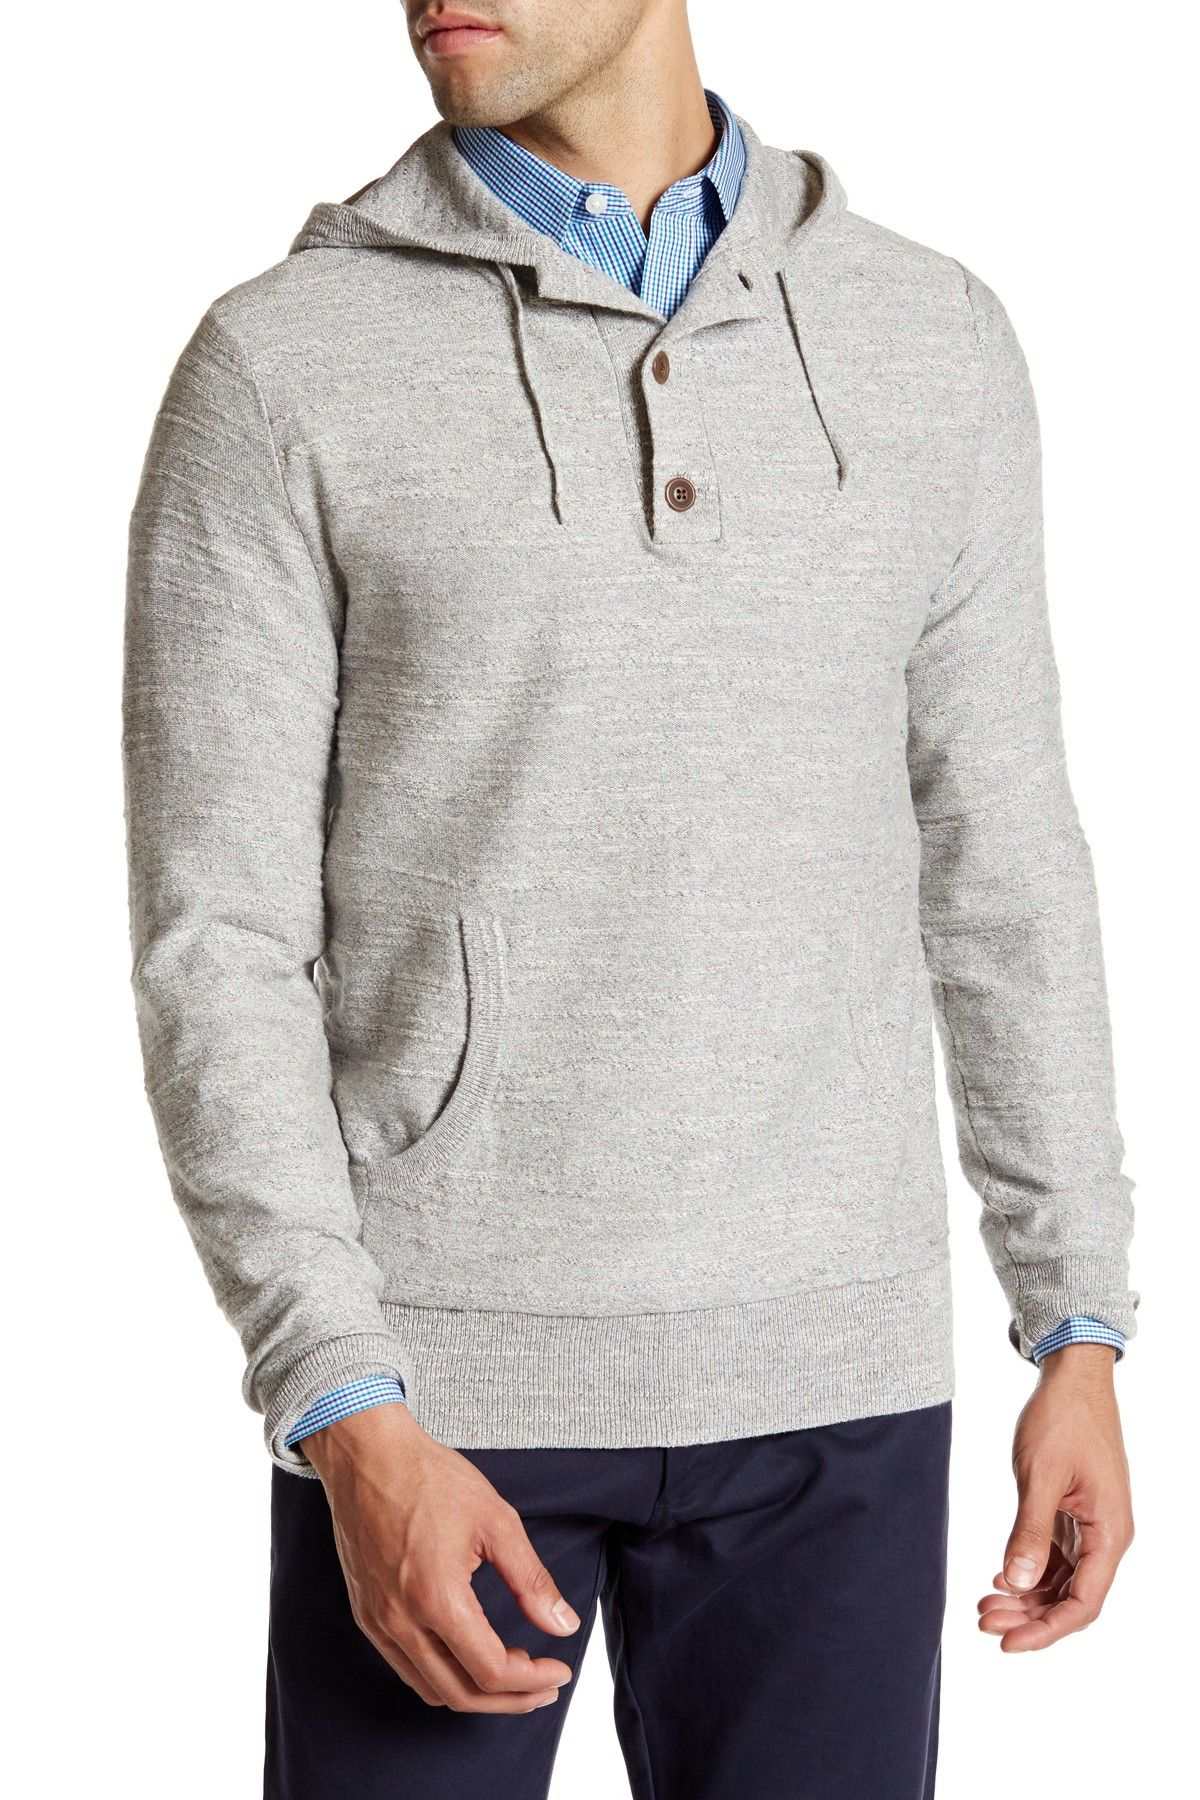 54e6a7de A supersoft, thermal hoodie with a two-button henley placket is cut for a  modern, layer-ready fit.